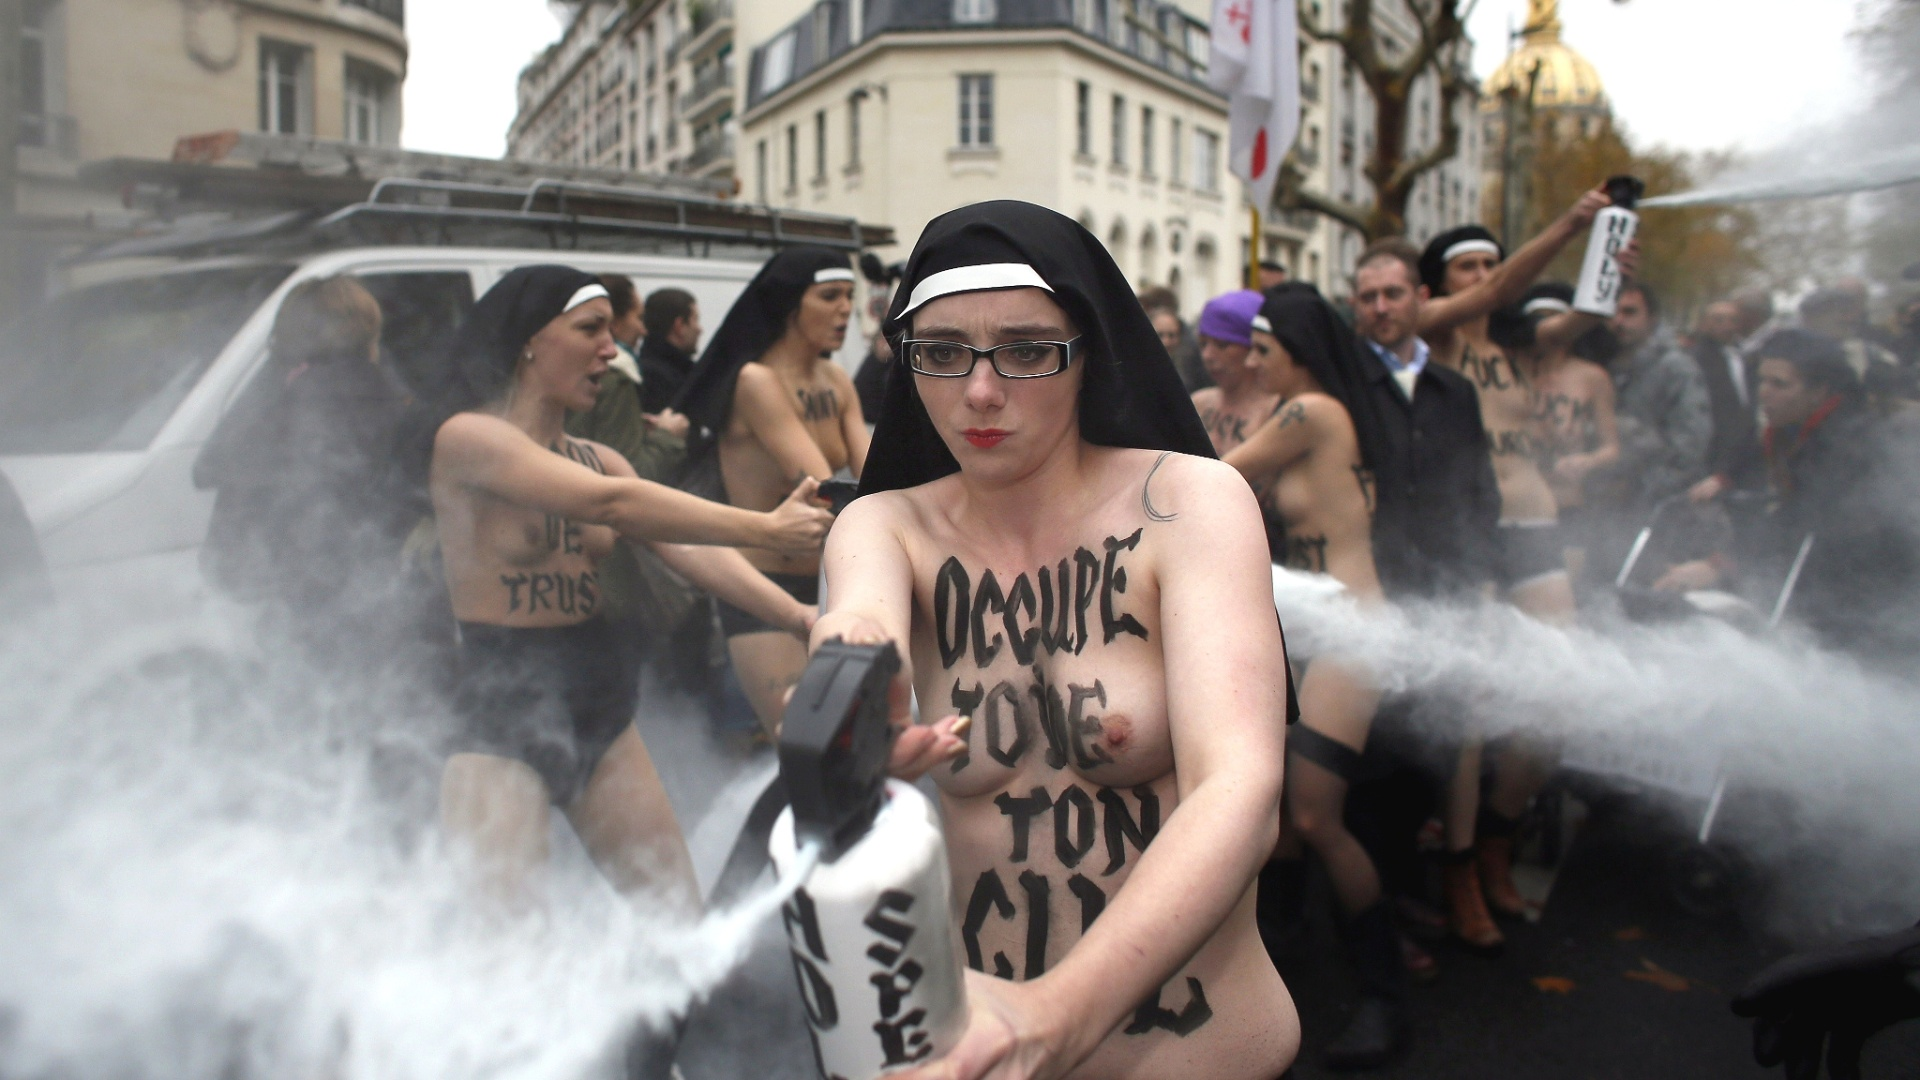 18.nov.2012 - Ativistas do grupo feminista Femen usam spray durante protesto, em Paris (Frana), contra a oposio da Igreja Catlica ao casamento gay